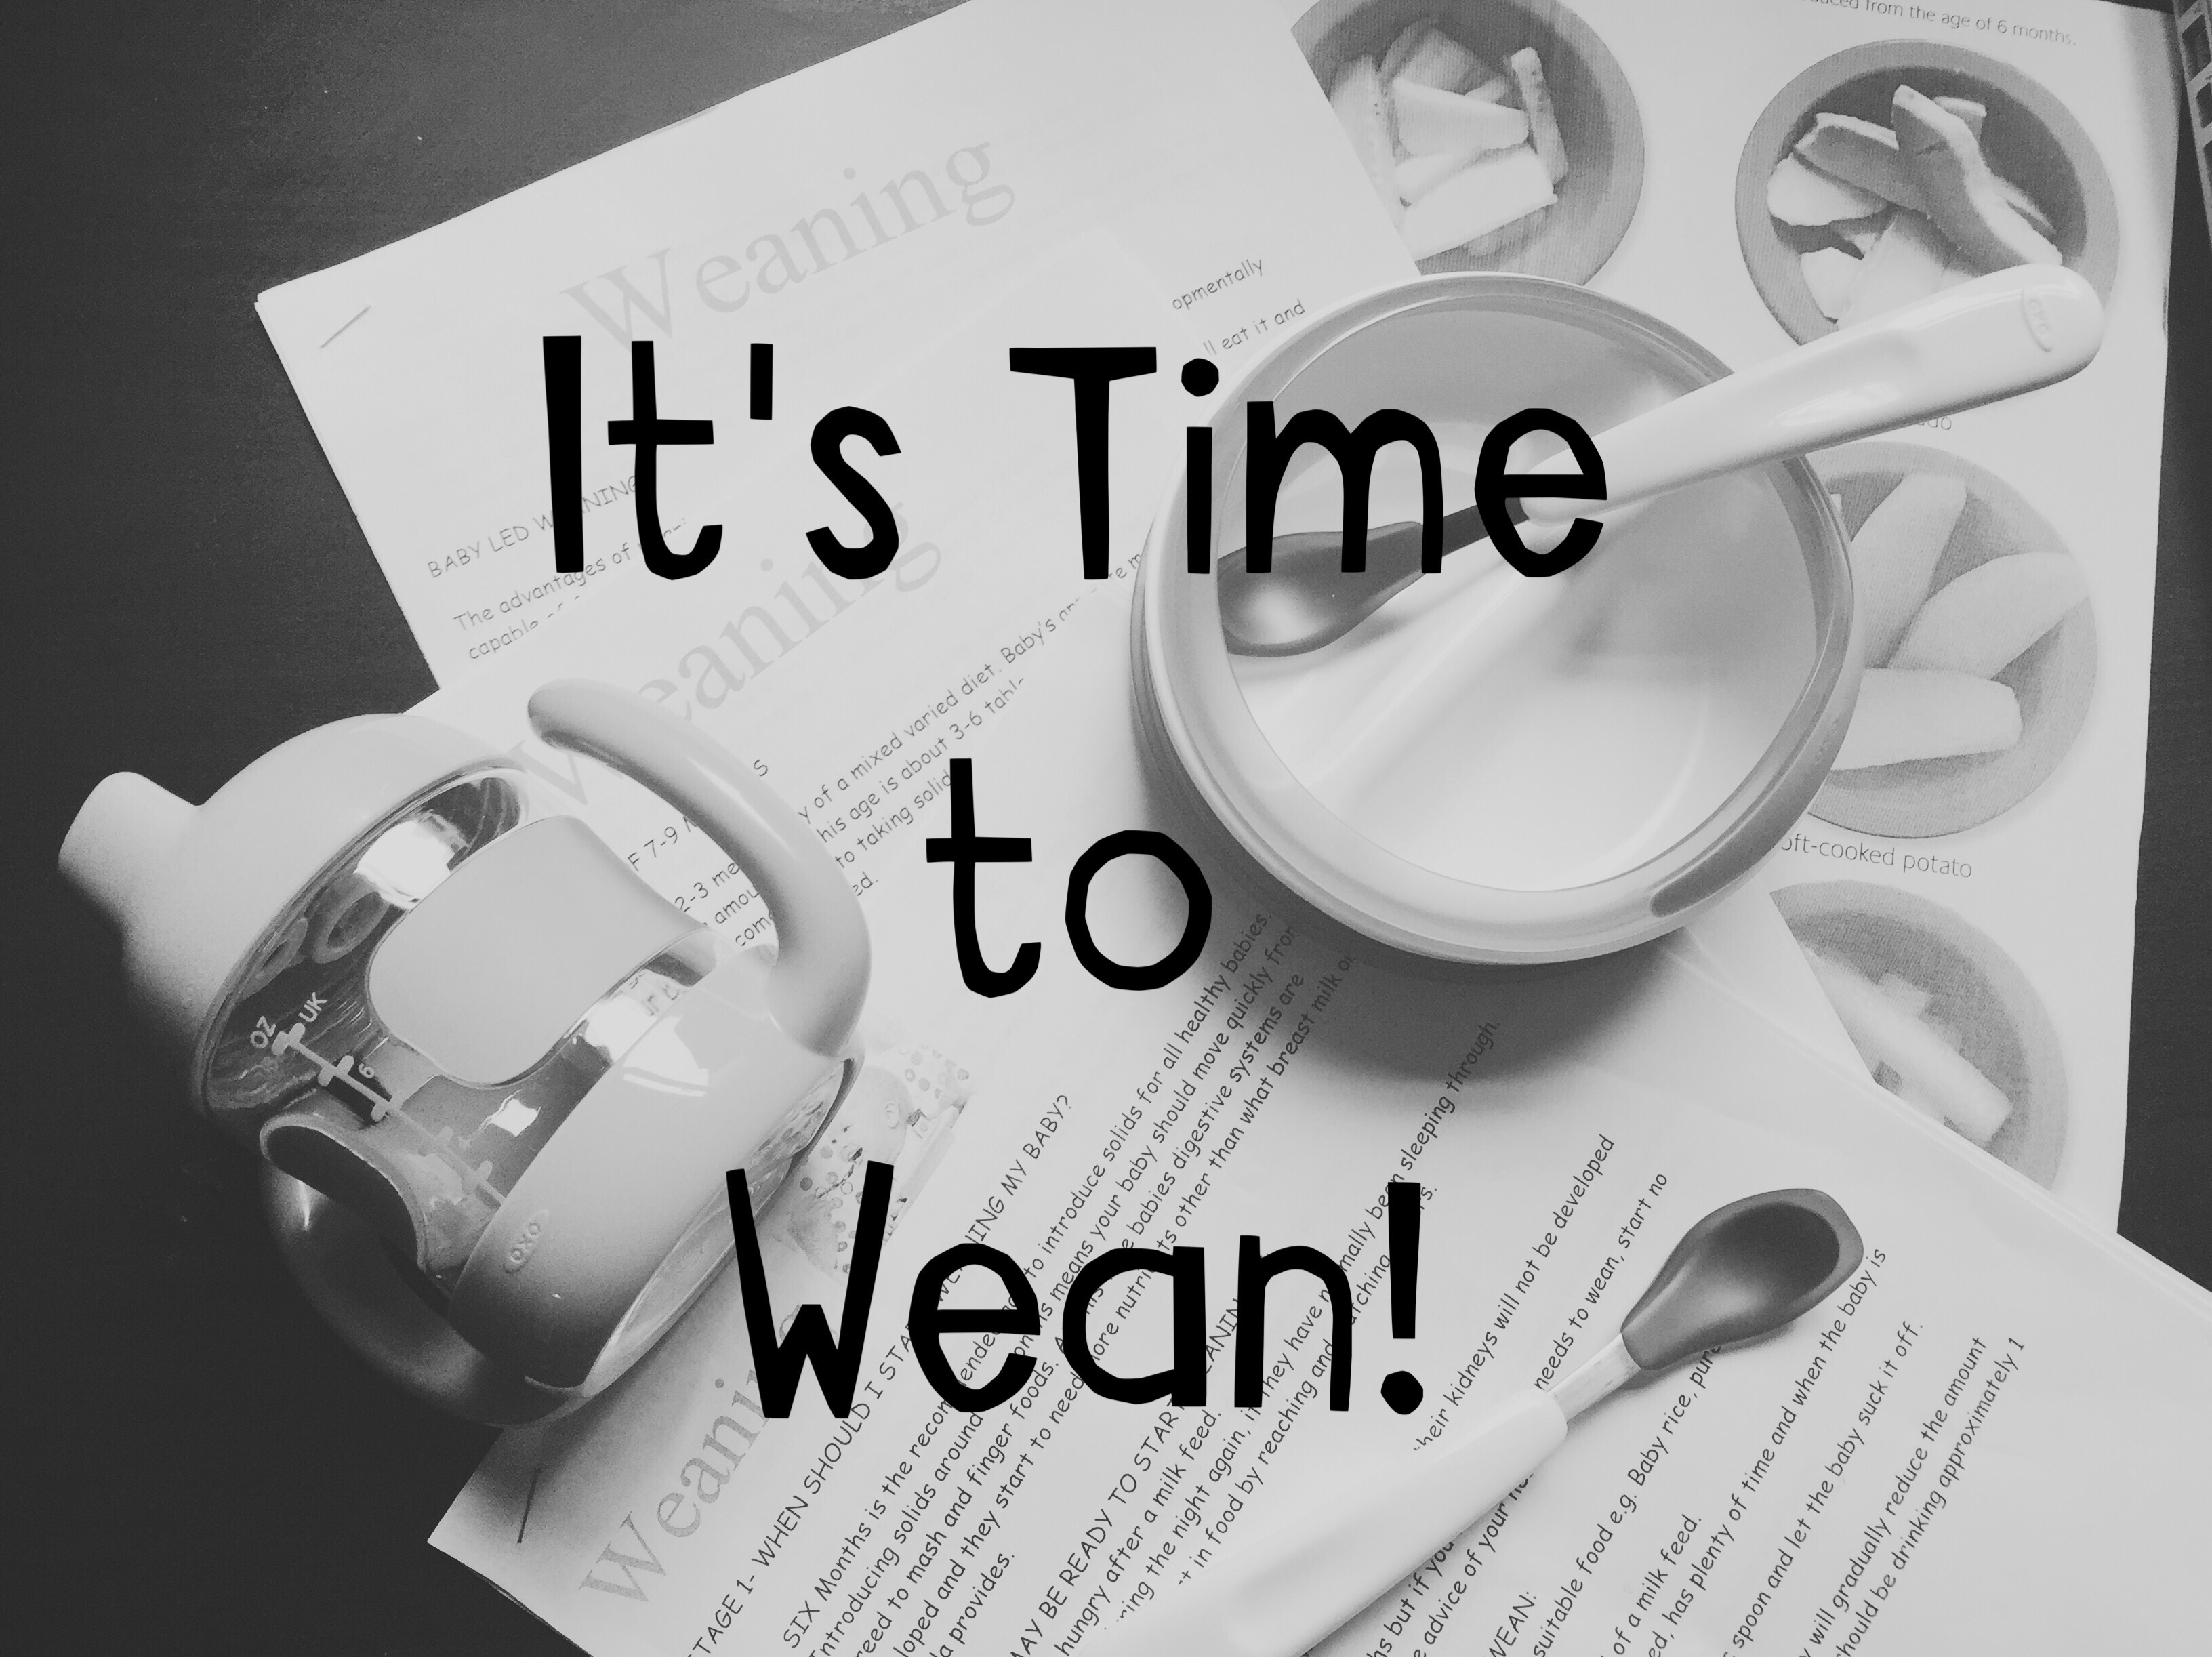 It's Time to Wean!